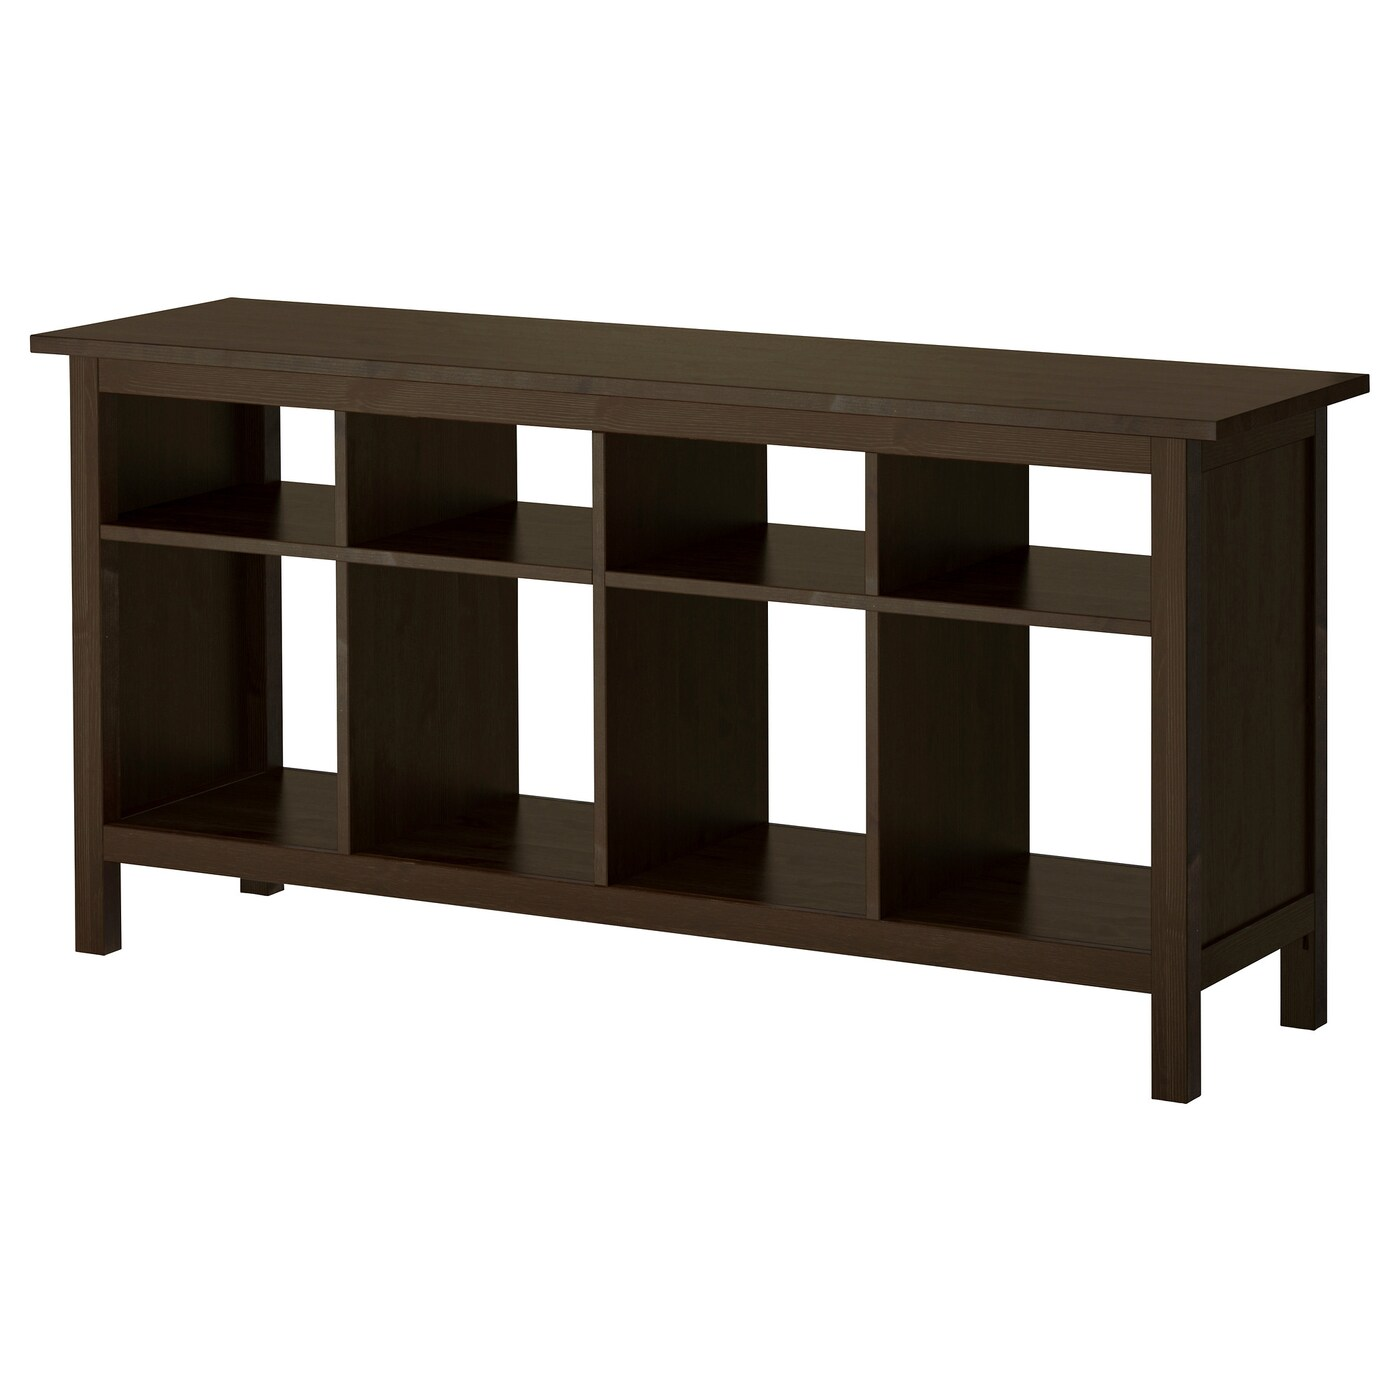 Table Console Ikea Hemnes Console Table Black Brown